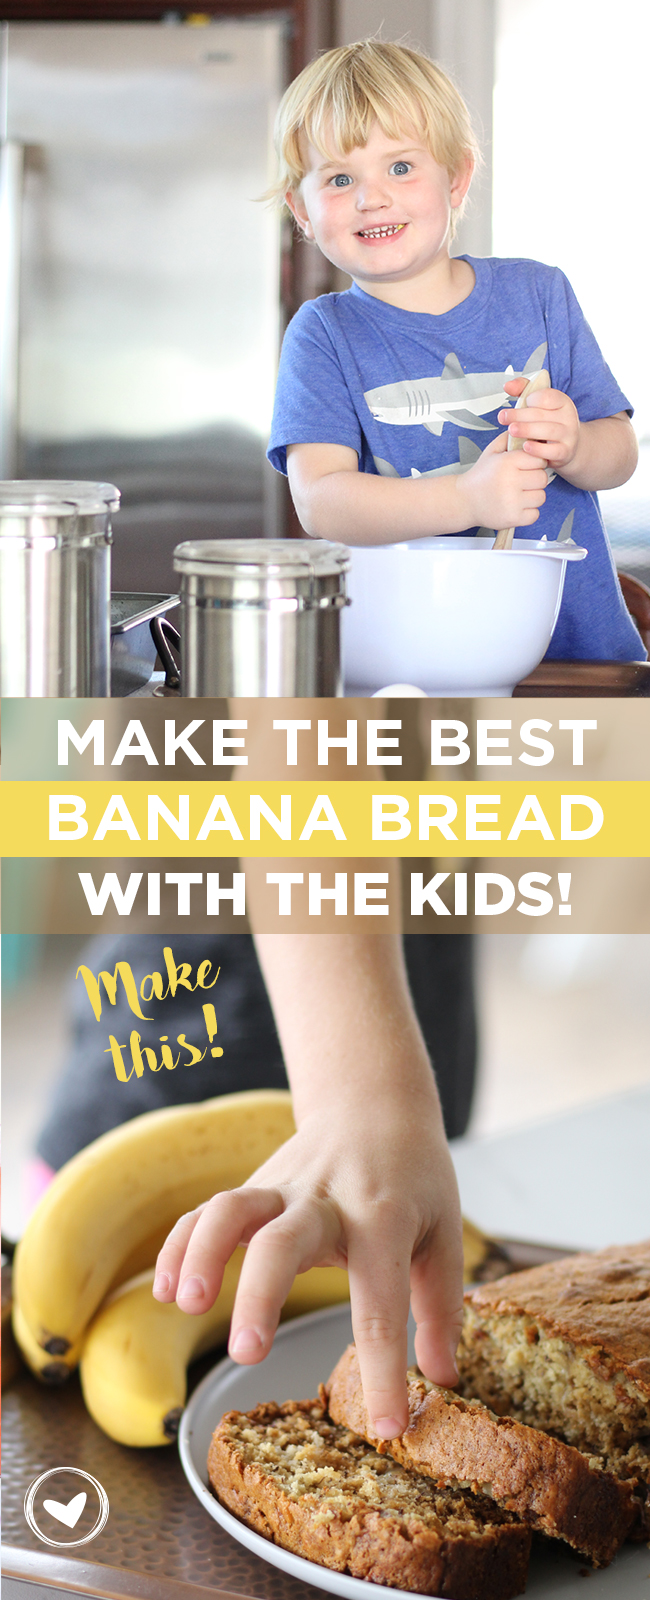 make the best banana bread